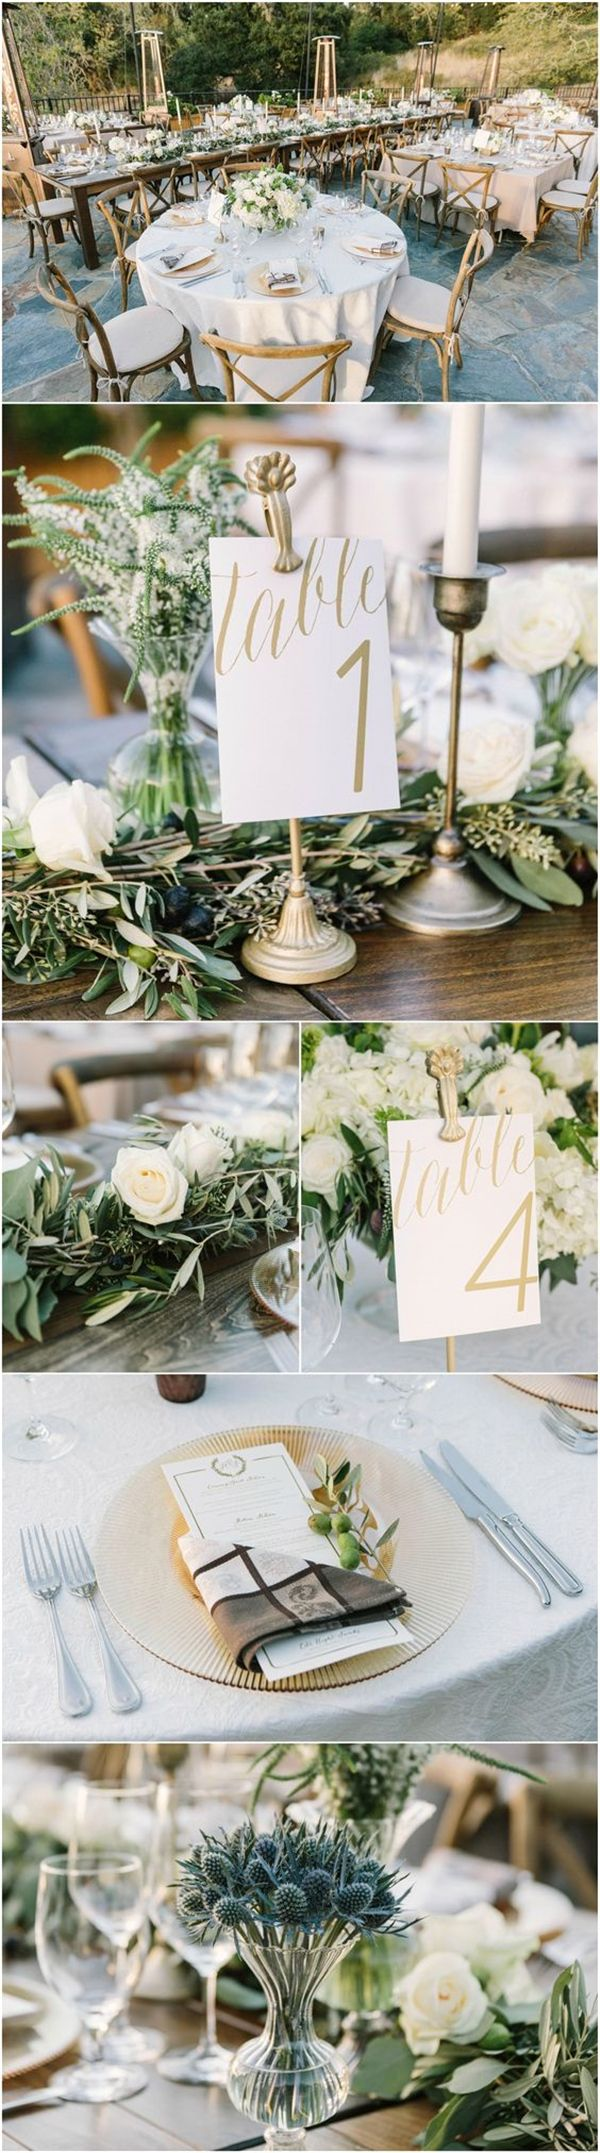 Top 10 flowers themed wedding ideas for outdoor ceremony wedding top 10 flowers themed wedding ideas for outdoor ceremony junglespirit Image collections